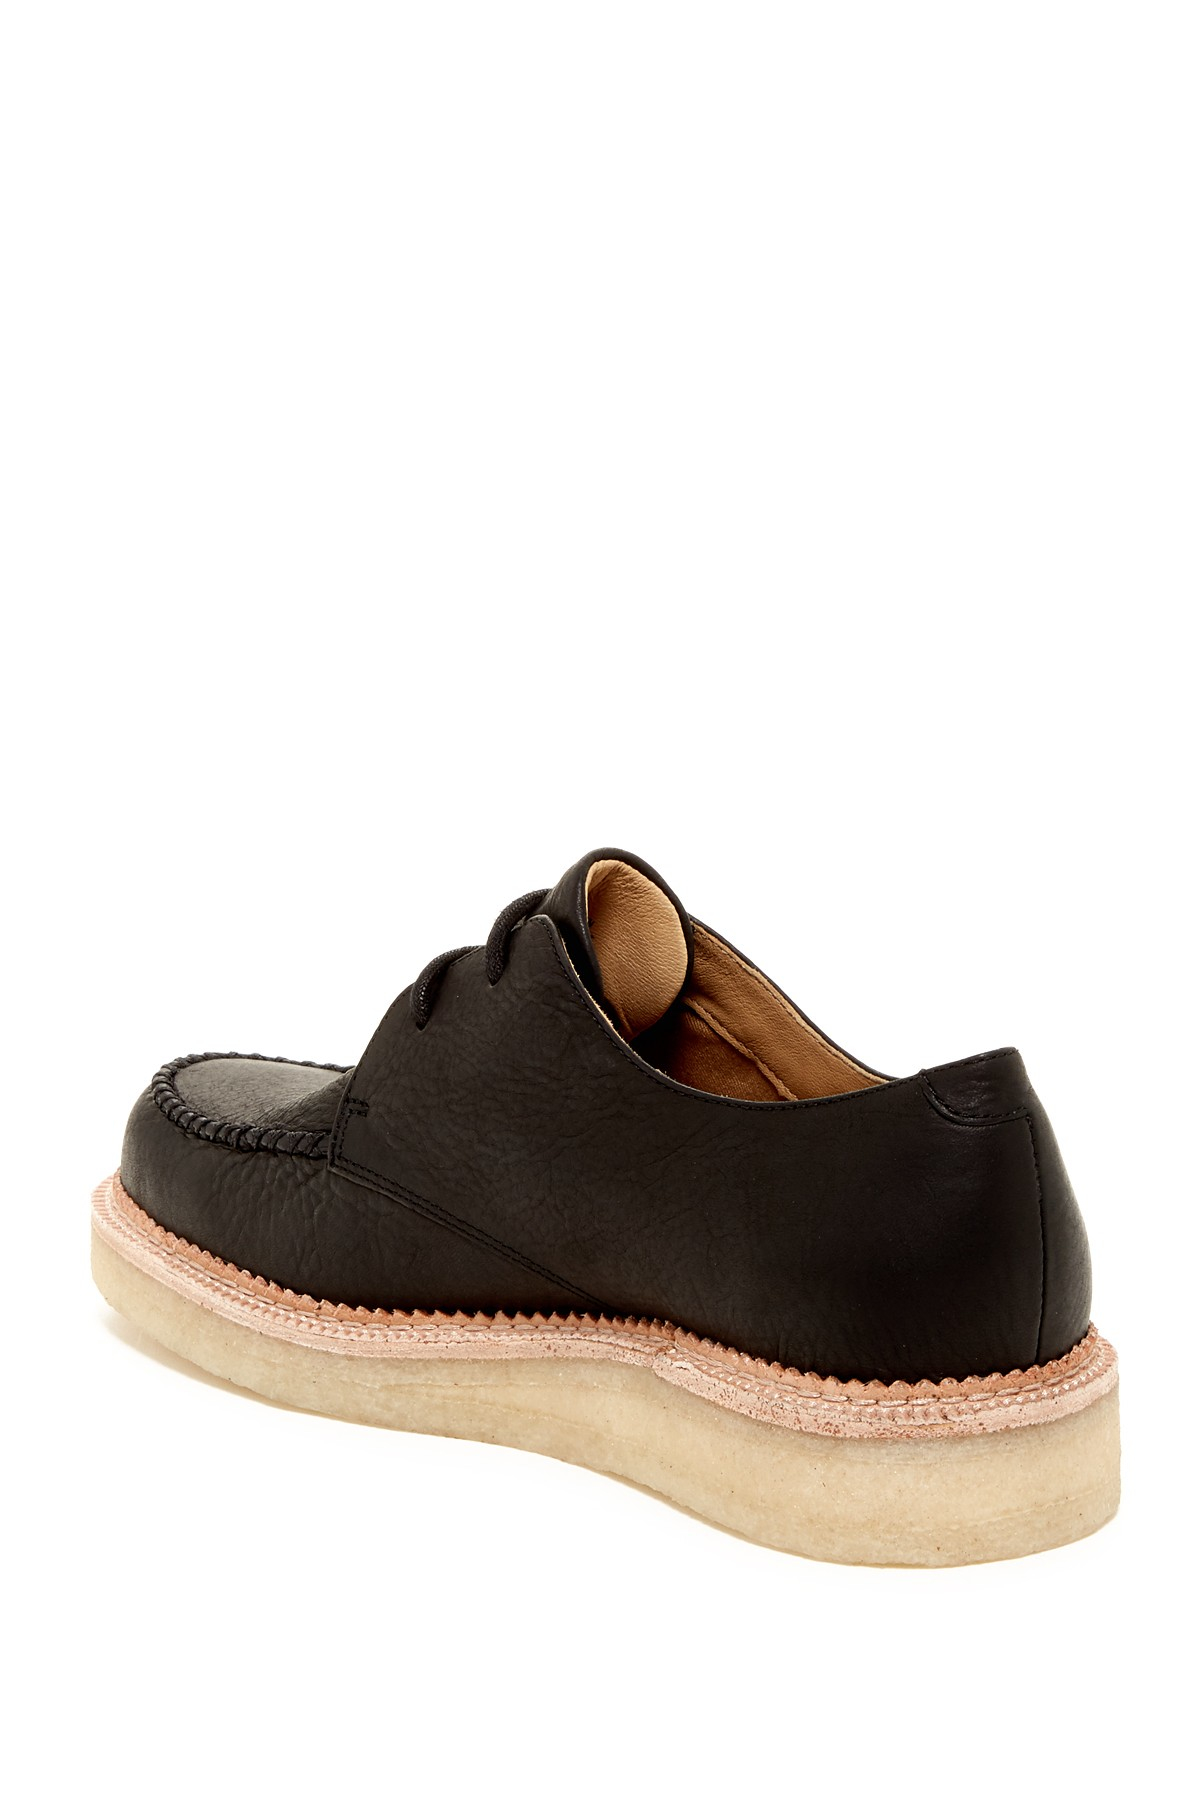 black single men in clarks hill Buy pumps at macy's and get free shipping with $99 purchase great selection of nude pumps, black, red and white pumps of all styles from popular brands.